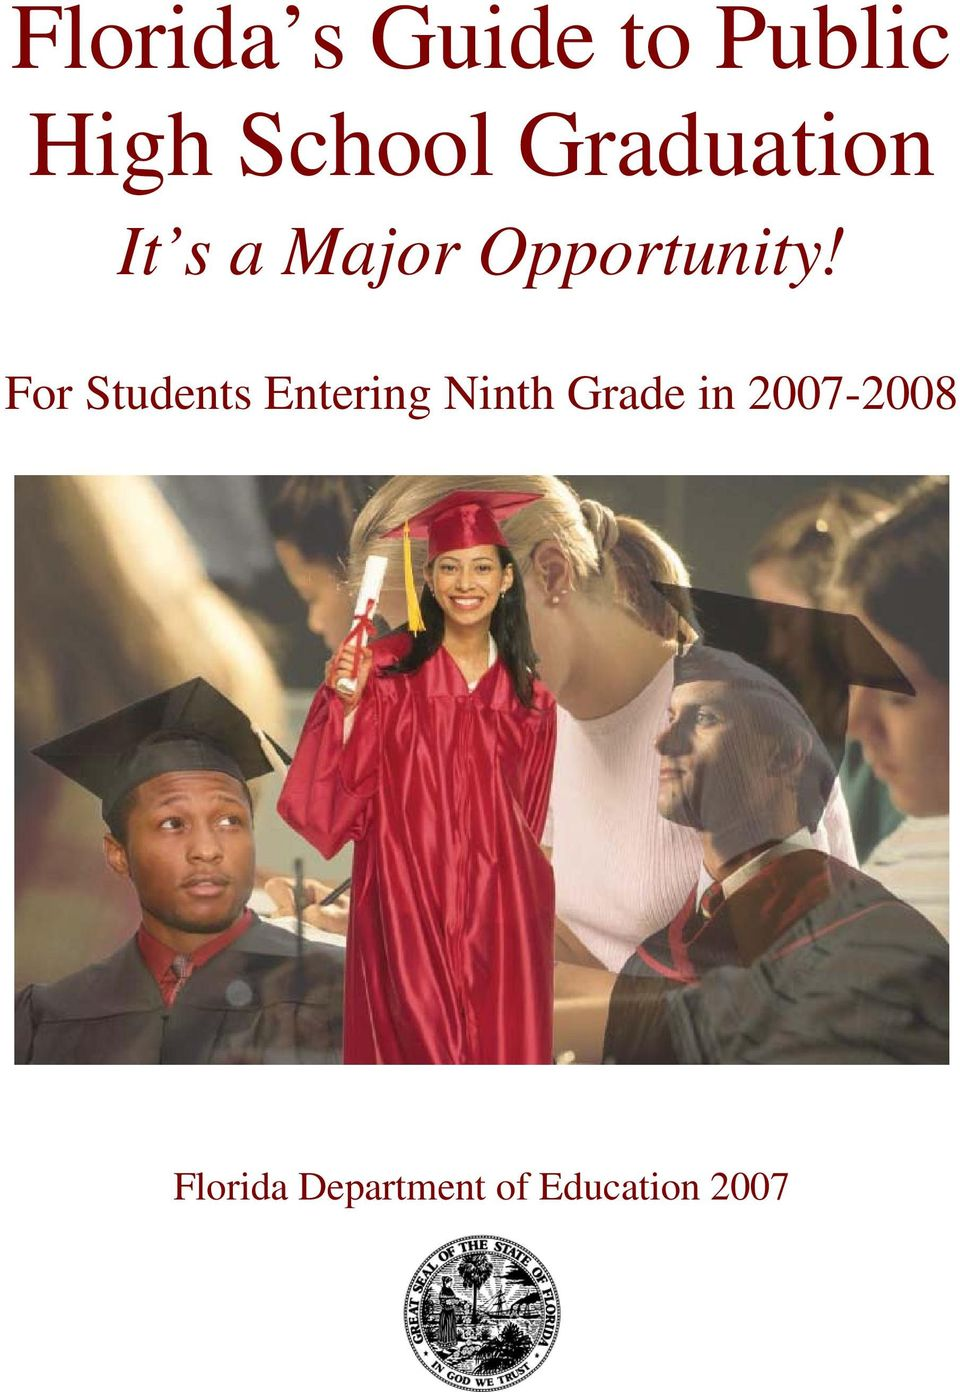 For Students Entering Ninth Grade in